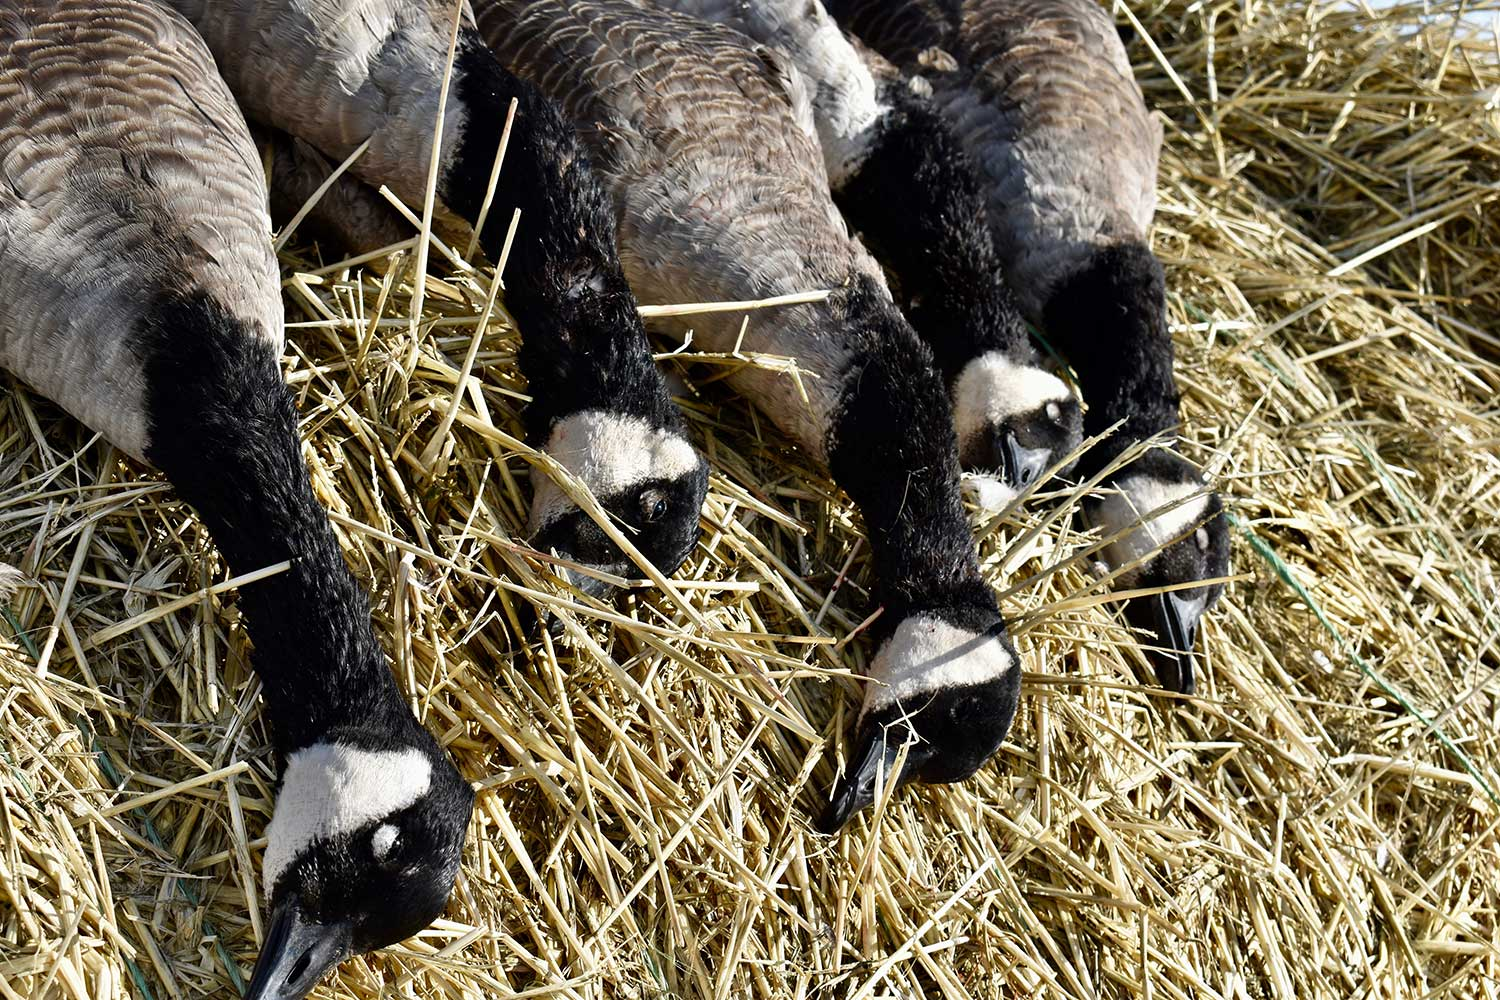 Several geese on a pile of hay.